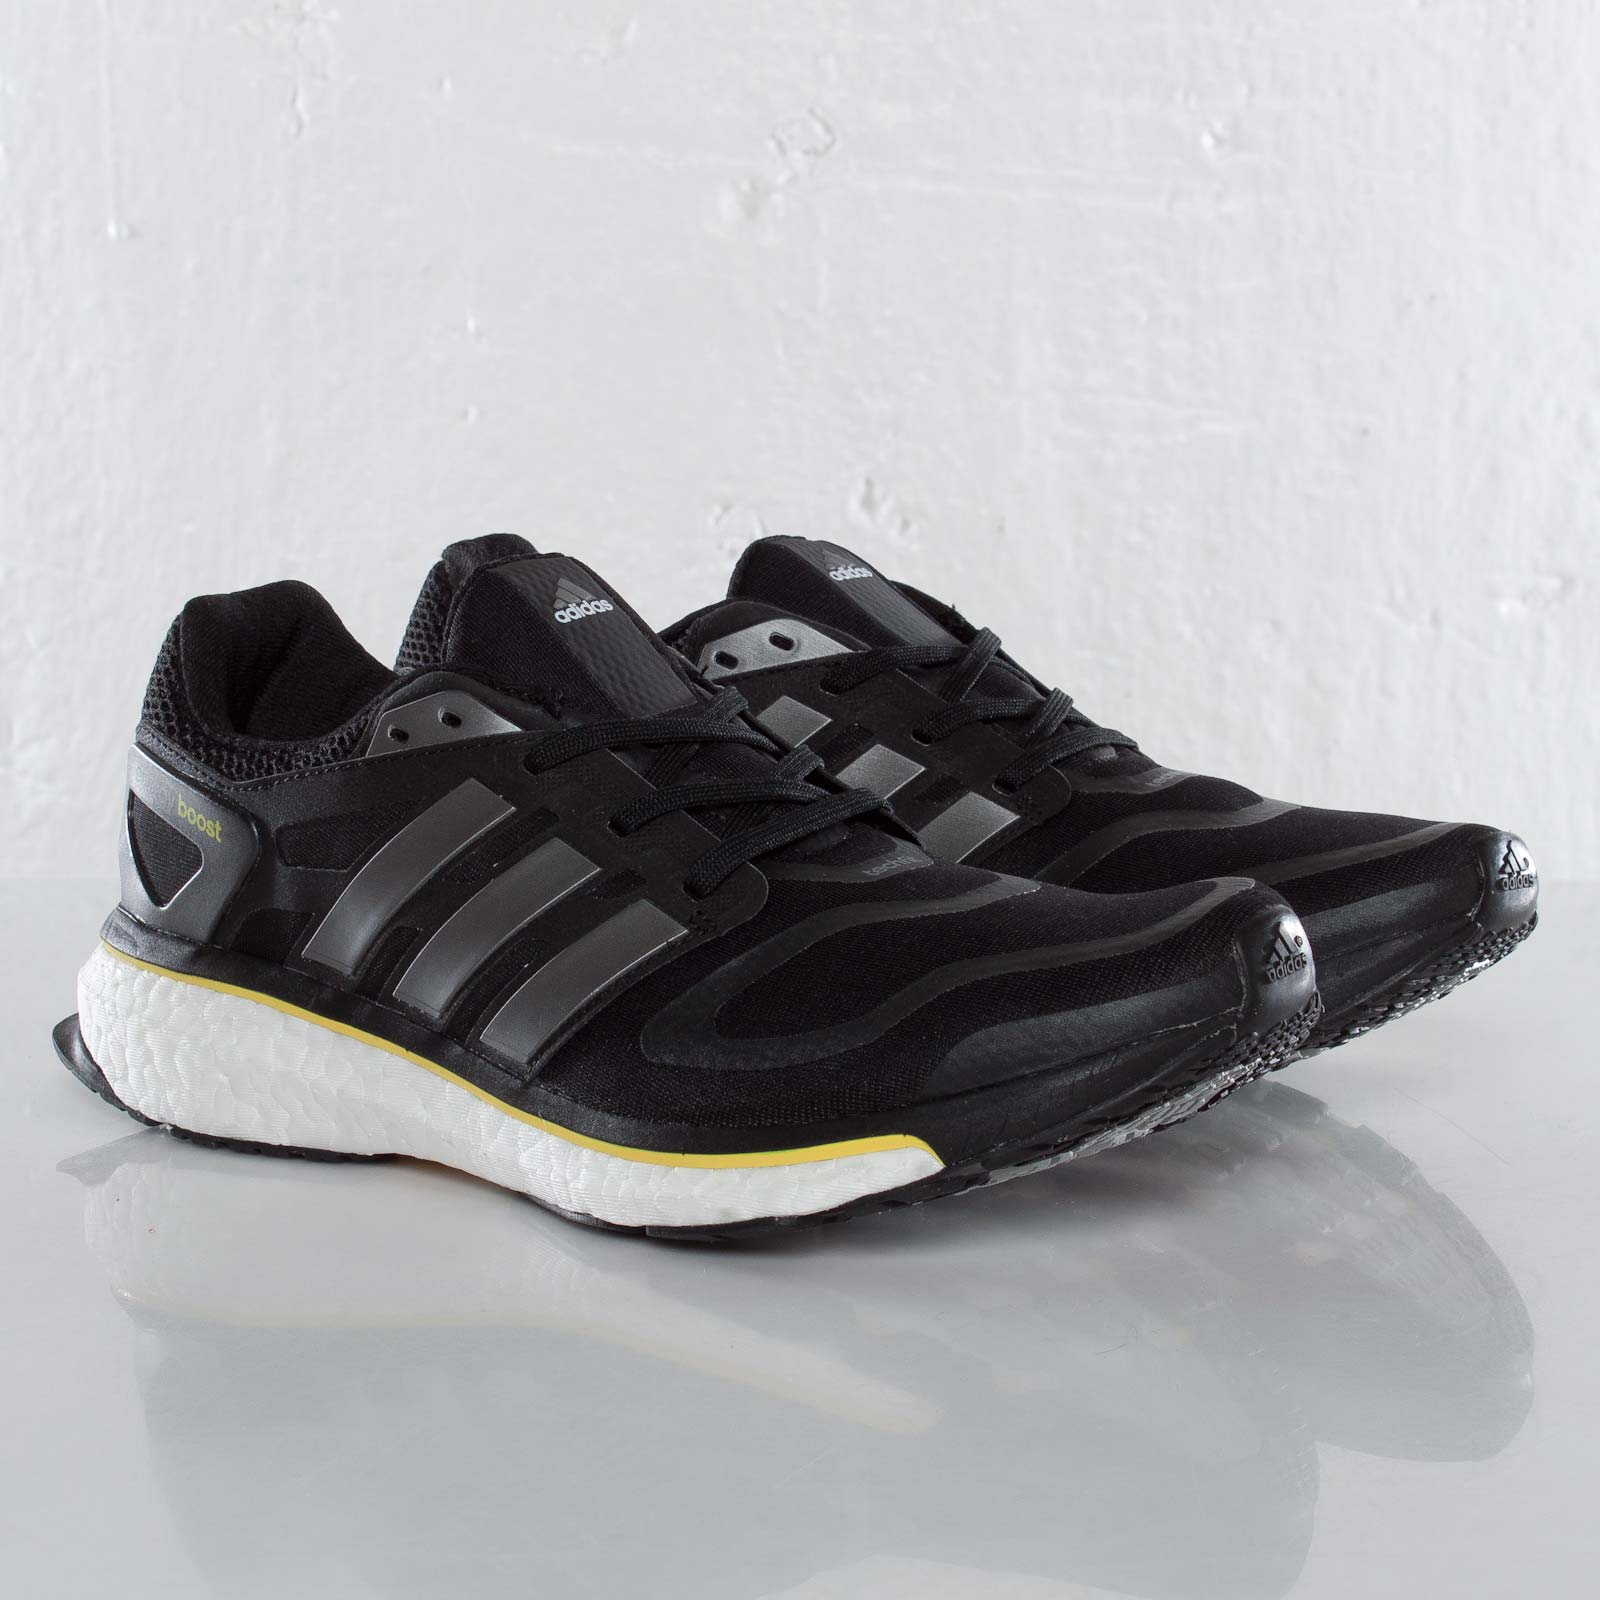 adidas Energy Boost M - G64392 - Sneakersnstuff  a9880c1dc